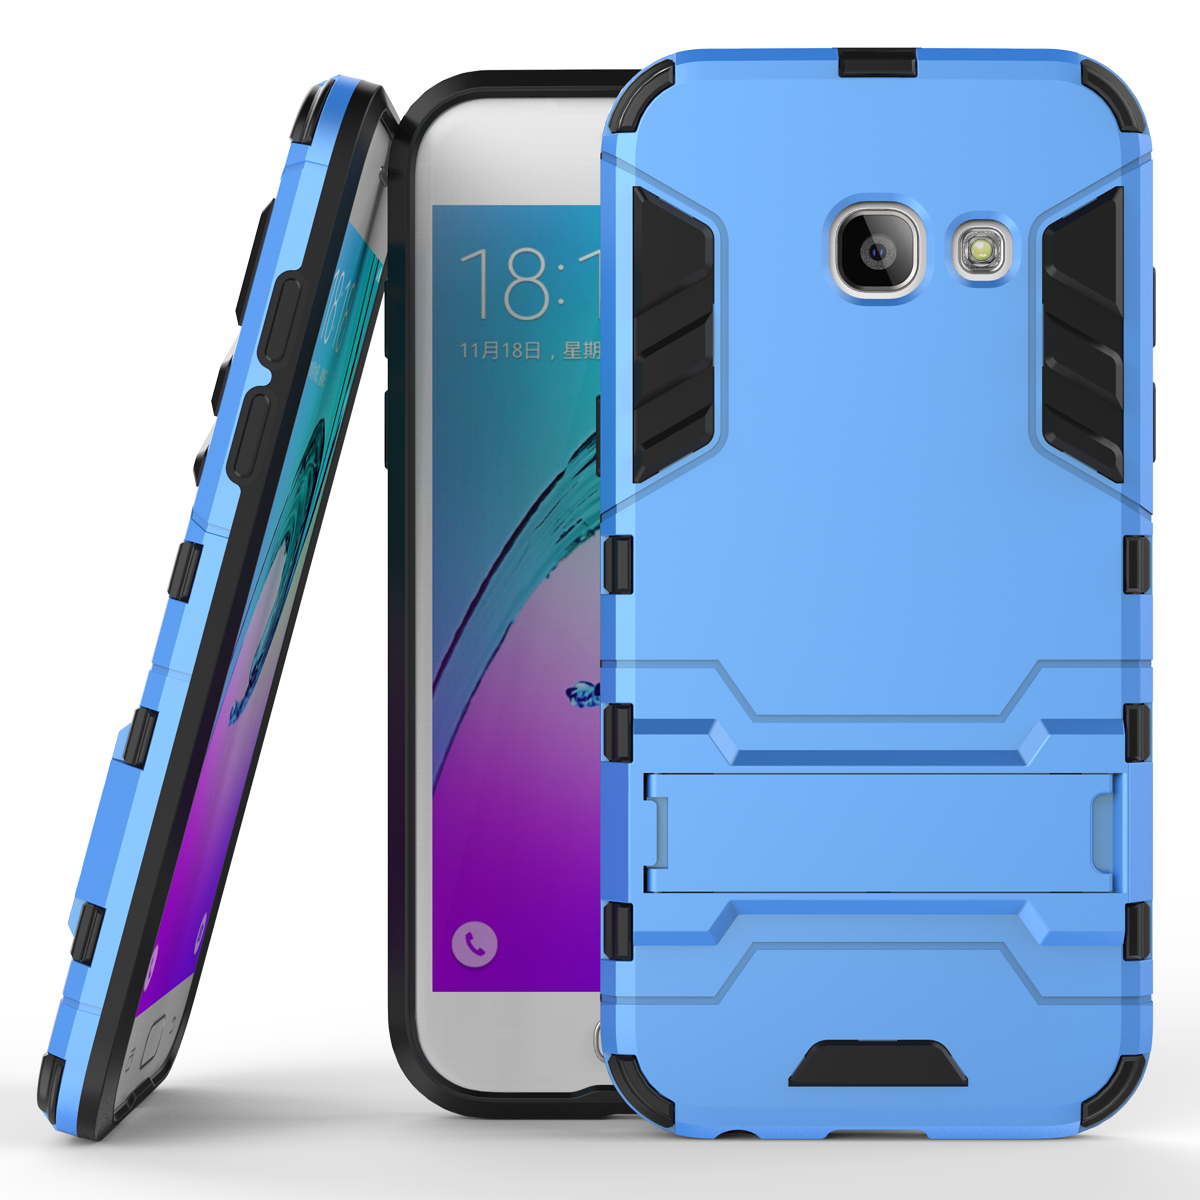 D armor kickstand protective phone cover case for samsung galaxy a3 2017 blue p20161229141311624